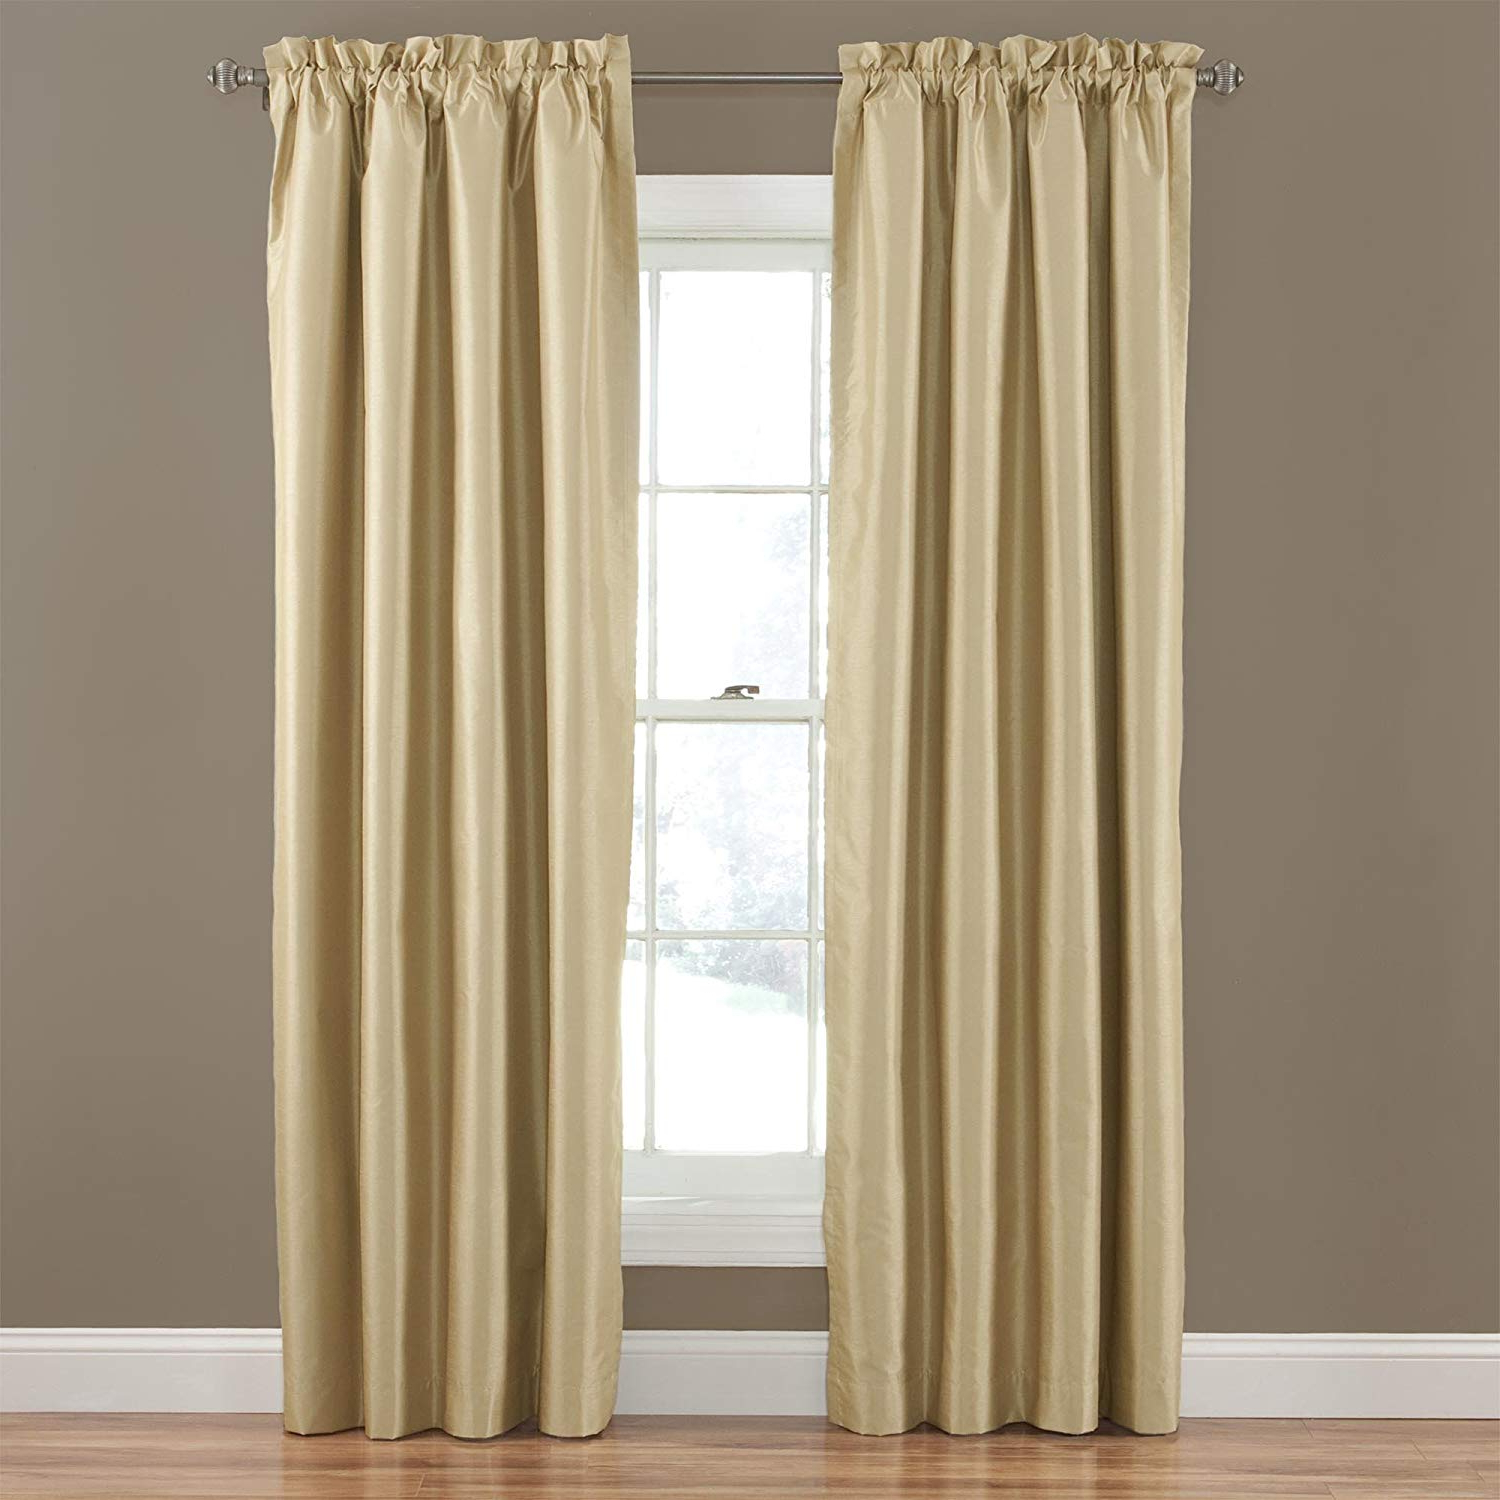 Hayden Rod Pocket Blackout Panels Throughout Current Eclipse Hayden Solid Blackout Window Curtain Panel, 4295 Inch, Gold (View 18 of 20)